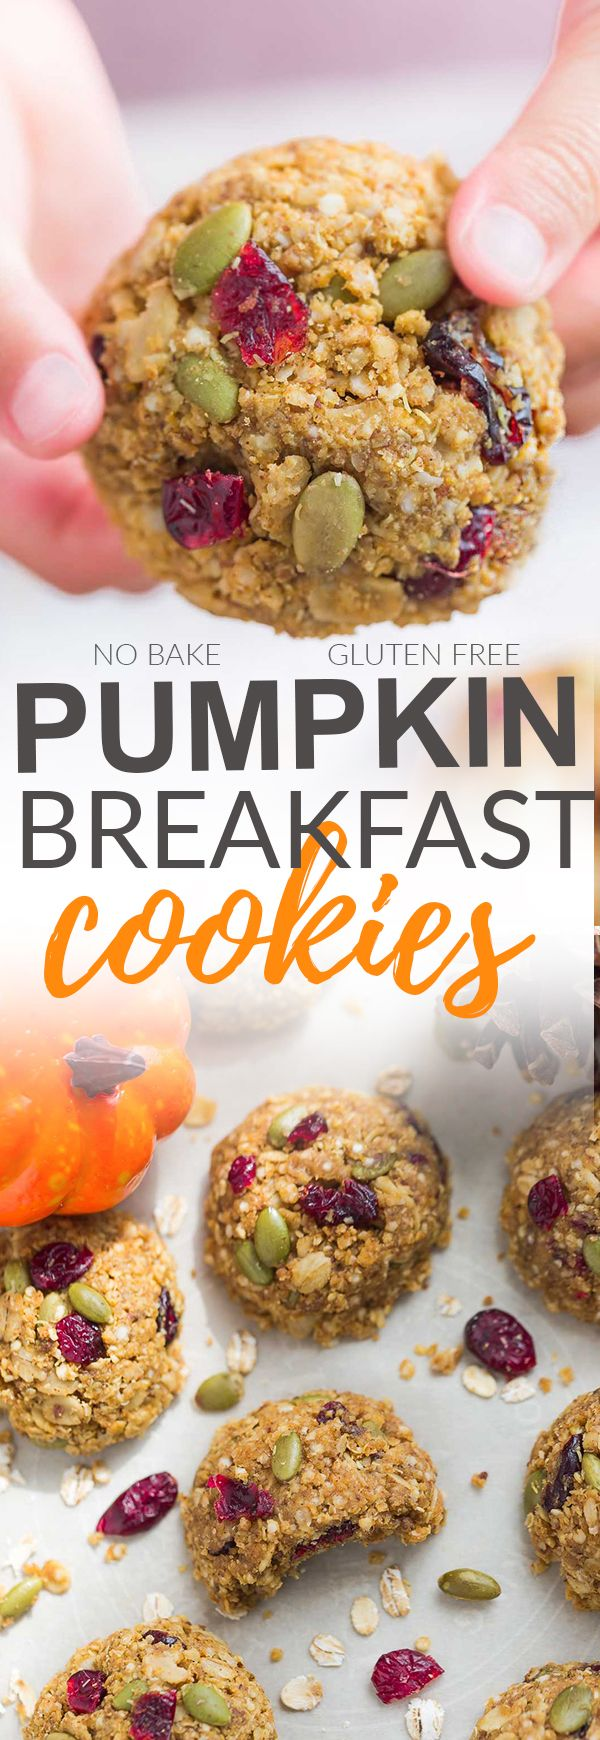 These Pumpkin Breakfast Cookies are the perfect easy breakfast for on the go. Best of all, this recipe is great if you feel like a no bake cookie when it's too hot to turn on the oven or you can bake them for 10 minutes for a warm treat. They're also loaded with pumpkin seeds, dried cranberries, cinnamon and pumpkin pie spice and totally scream fall. Plus they're gluten free, made with no butter and are super easy to customize with your favorite add-ins. #AD @SPLENDA #splendasweeties…